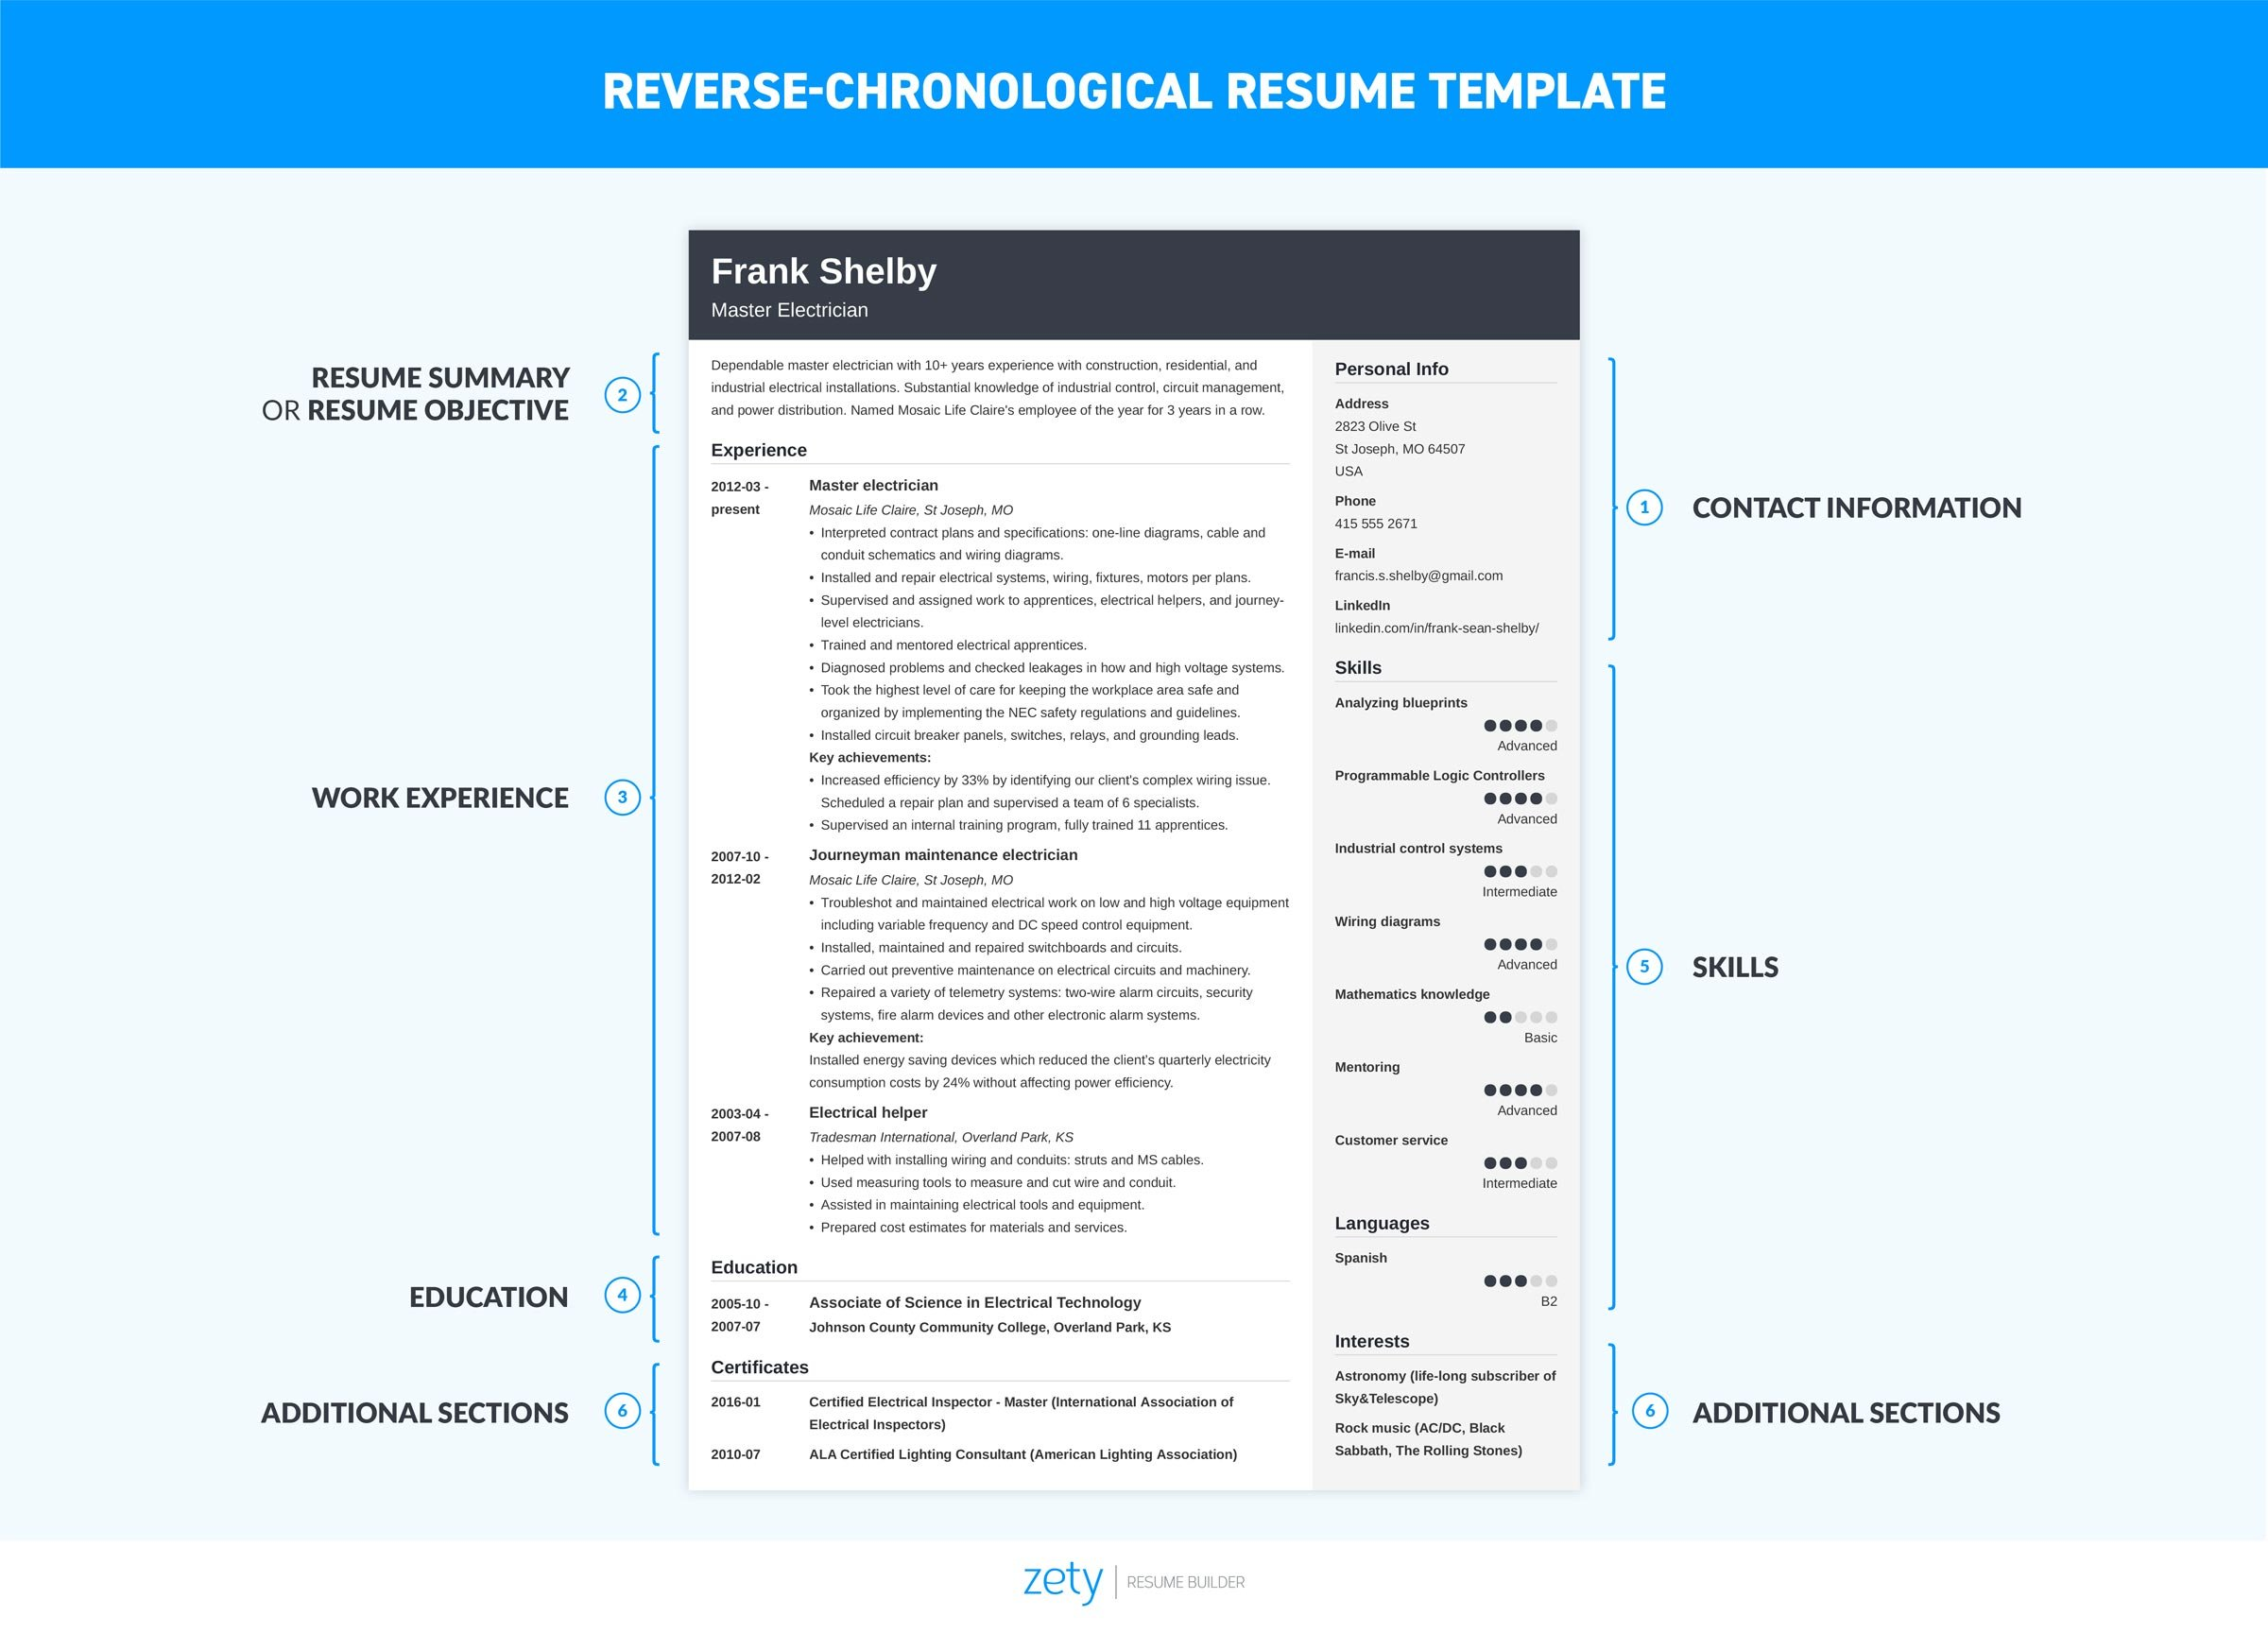 Examples Of A Chronological Resume Chronological Resume Template 20 Examples Complete Guide